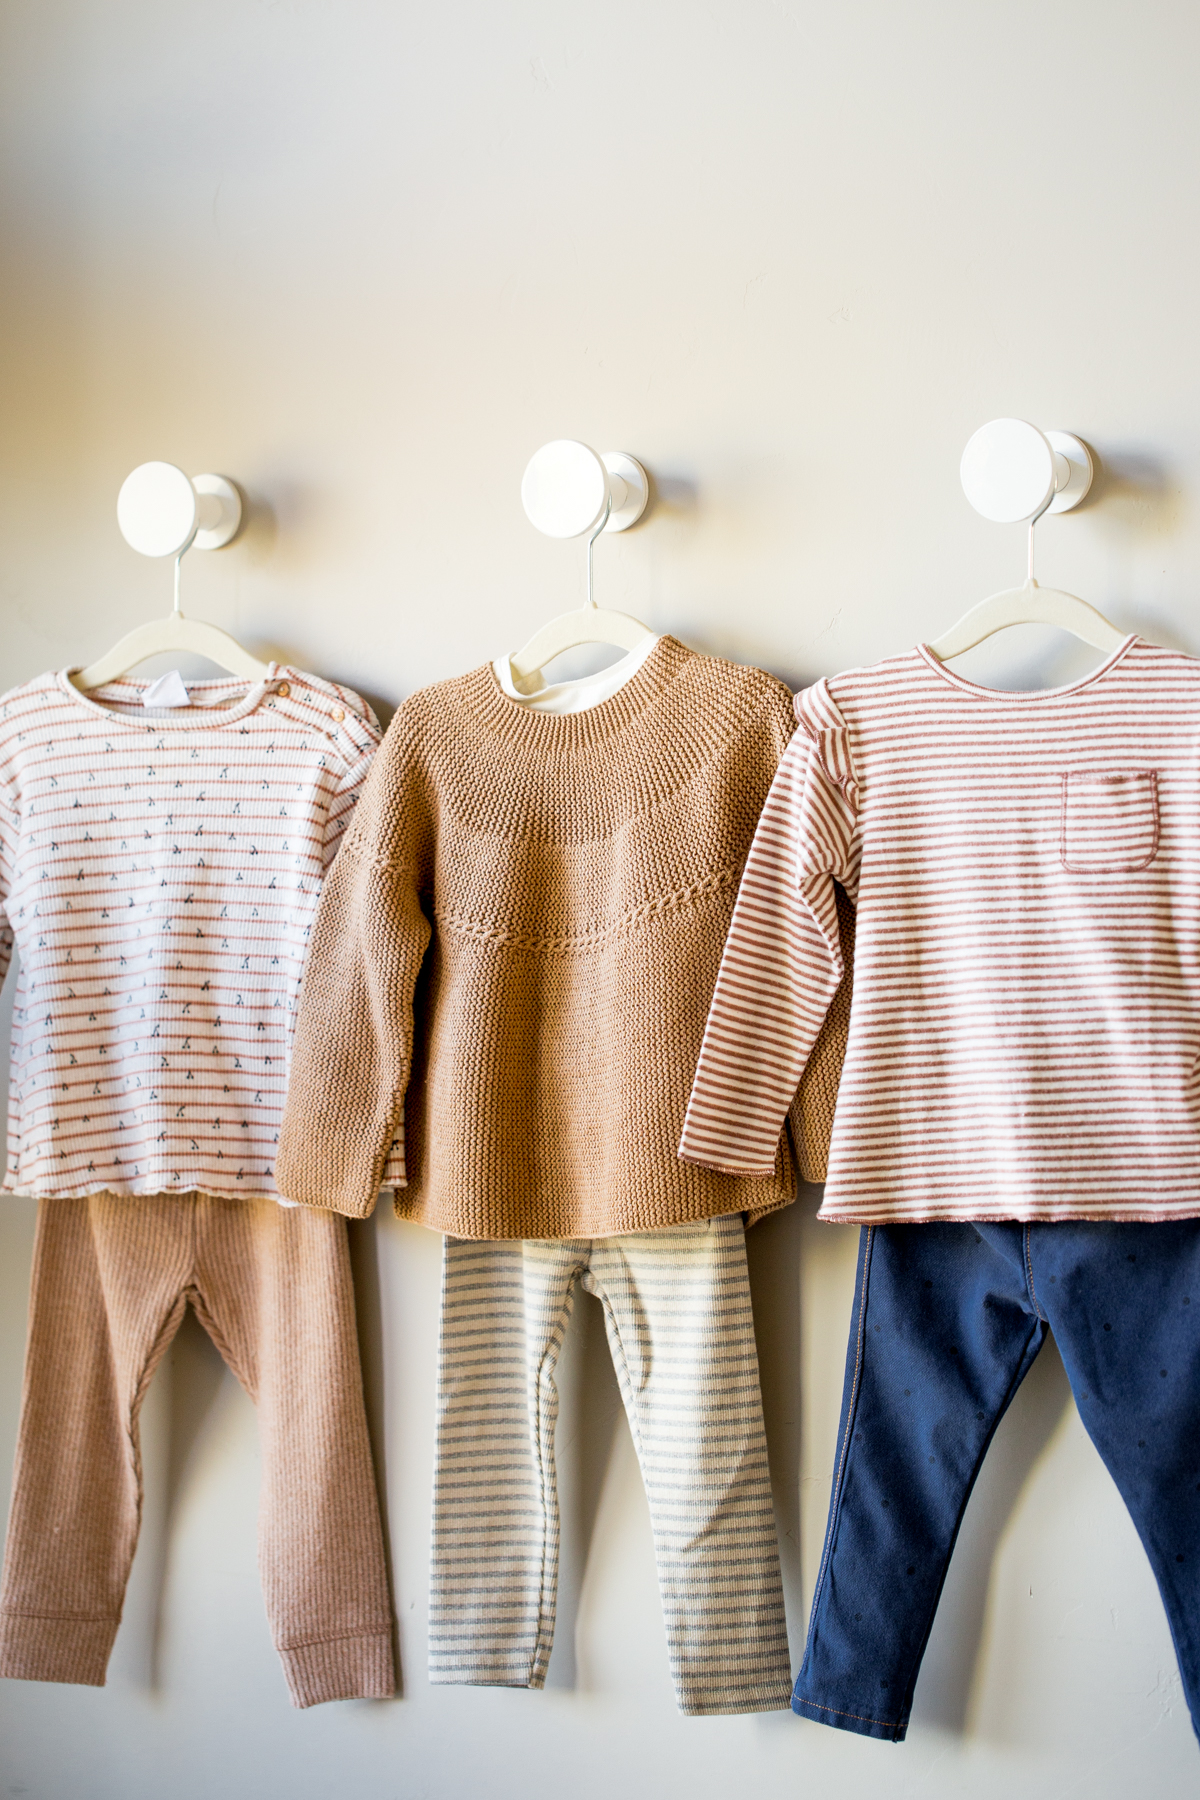 kids girls capsule wardrobe 3 outfits on hangers